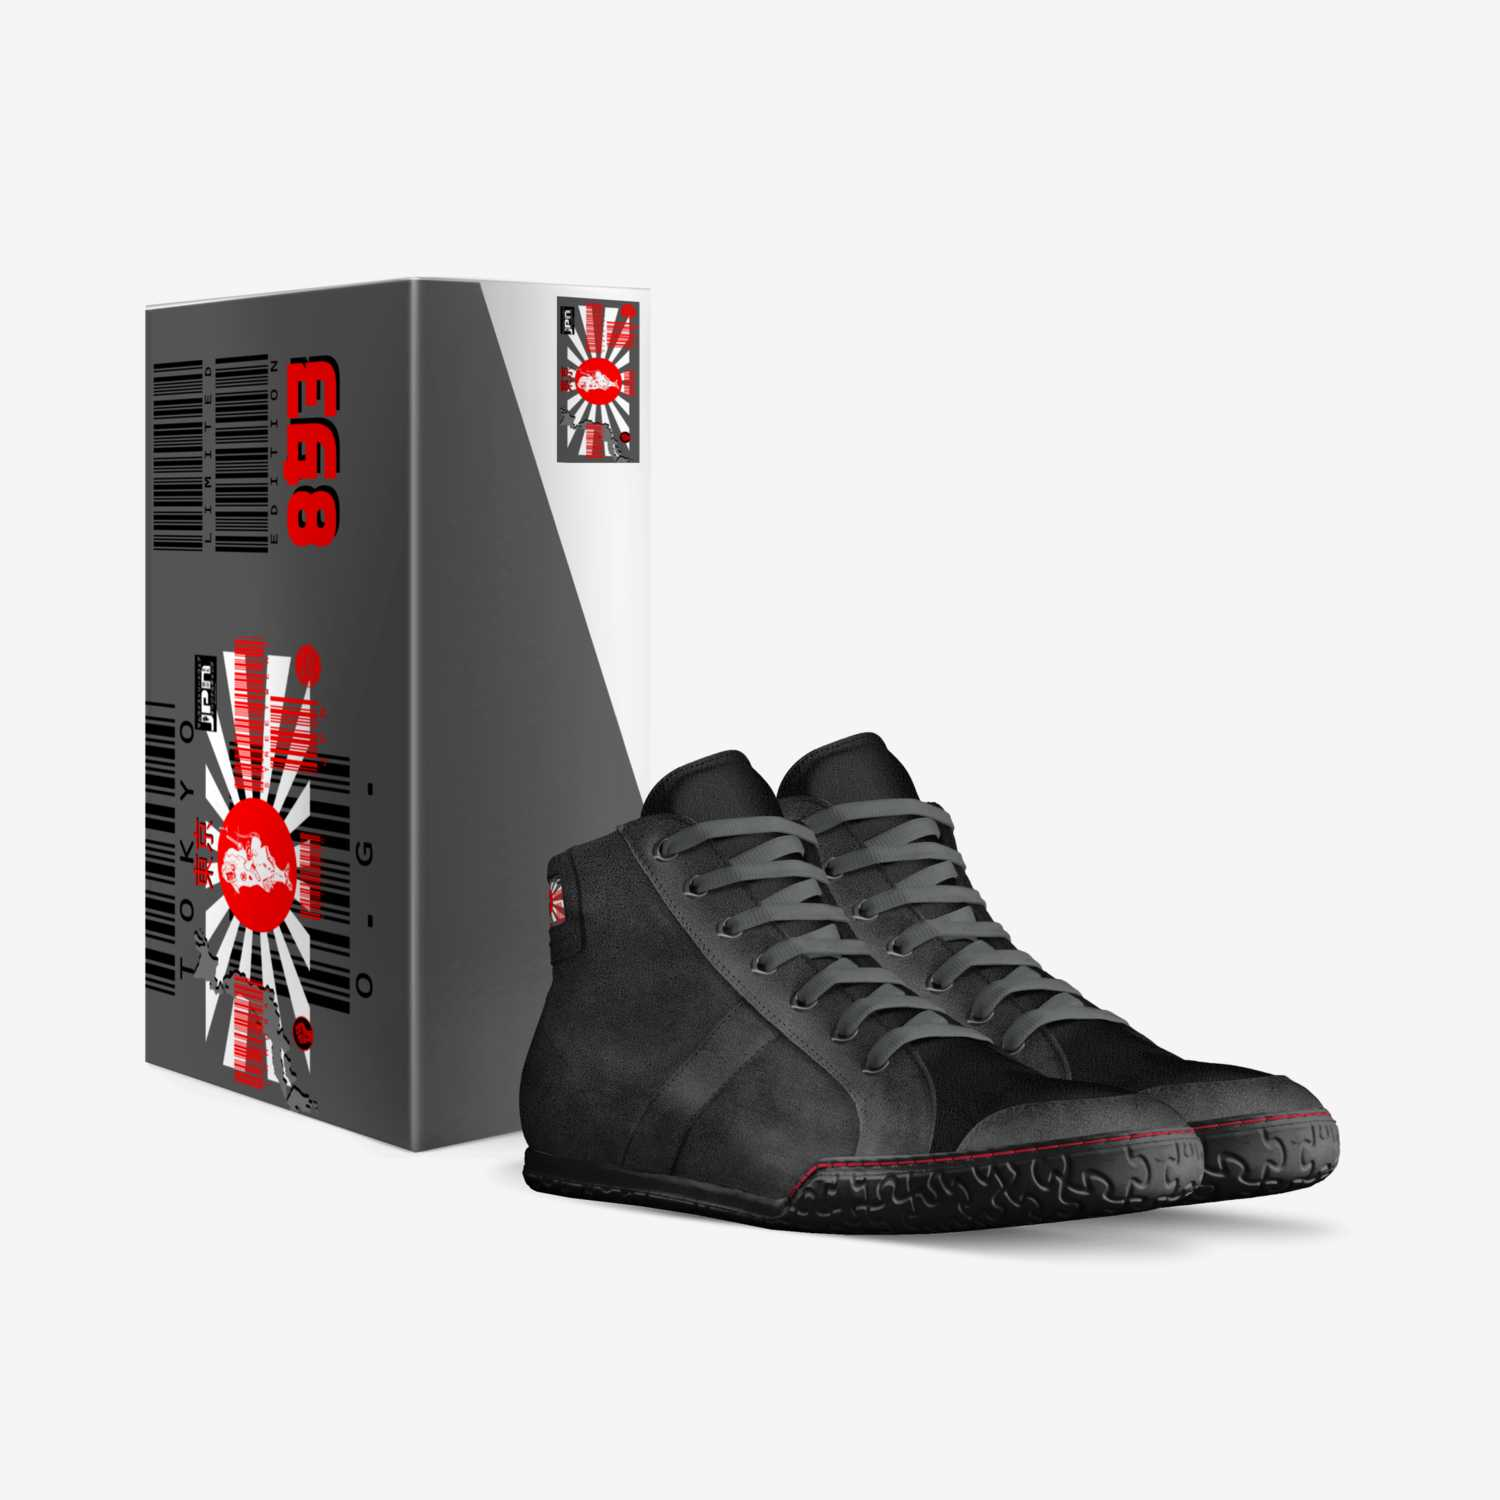 TOKYO 893 custom made in Italy shoes by Kevin Marron   Box view